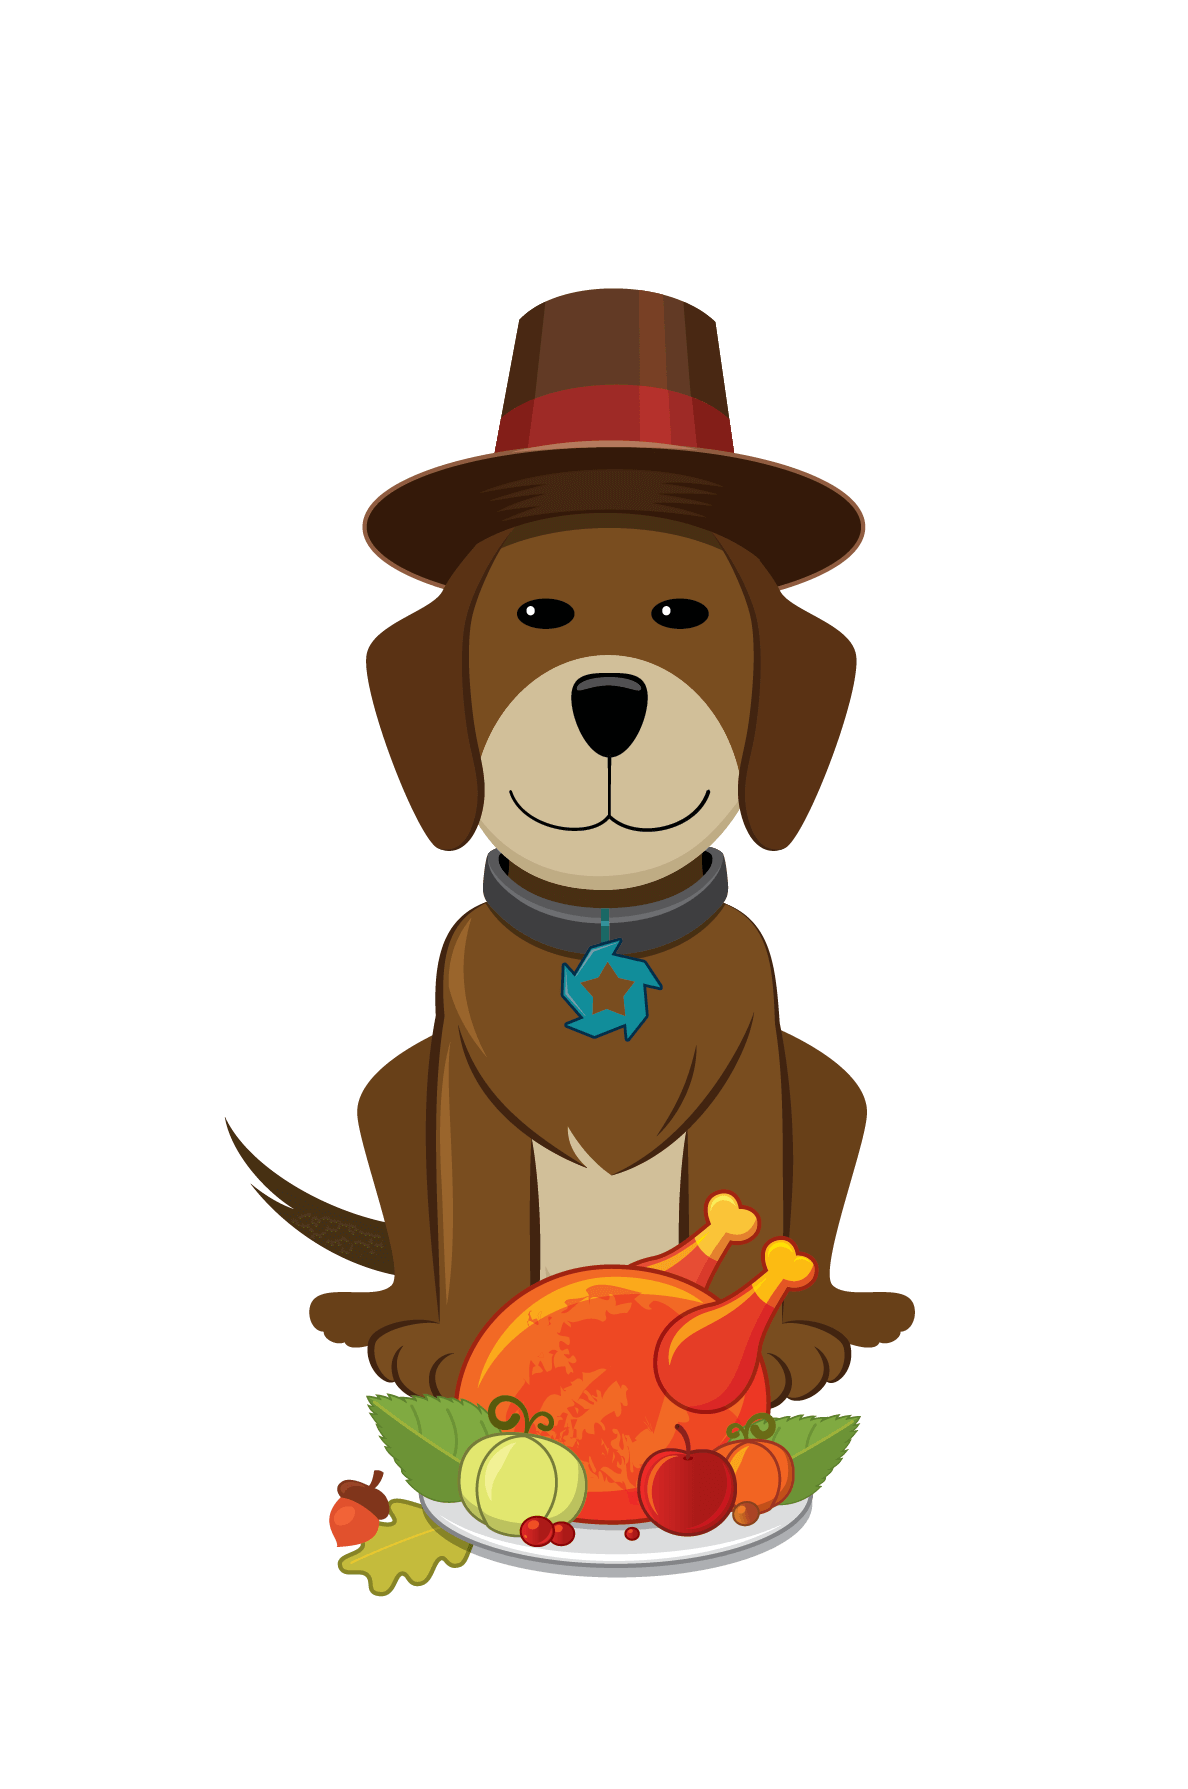 Free clipart cat and dog thanksgiving image library download 28+ Collection of Dog Thanksgiving Clipart | High quality, free ... image library download